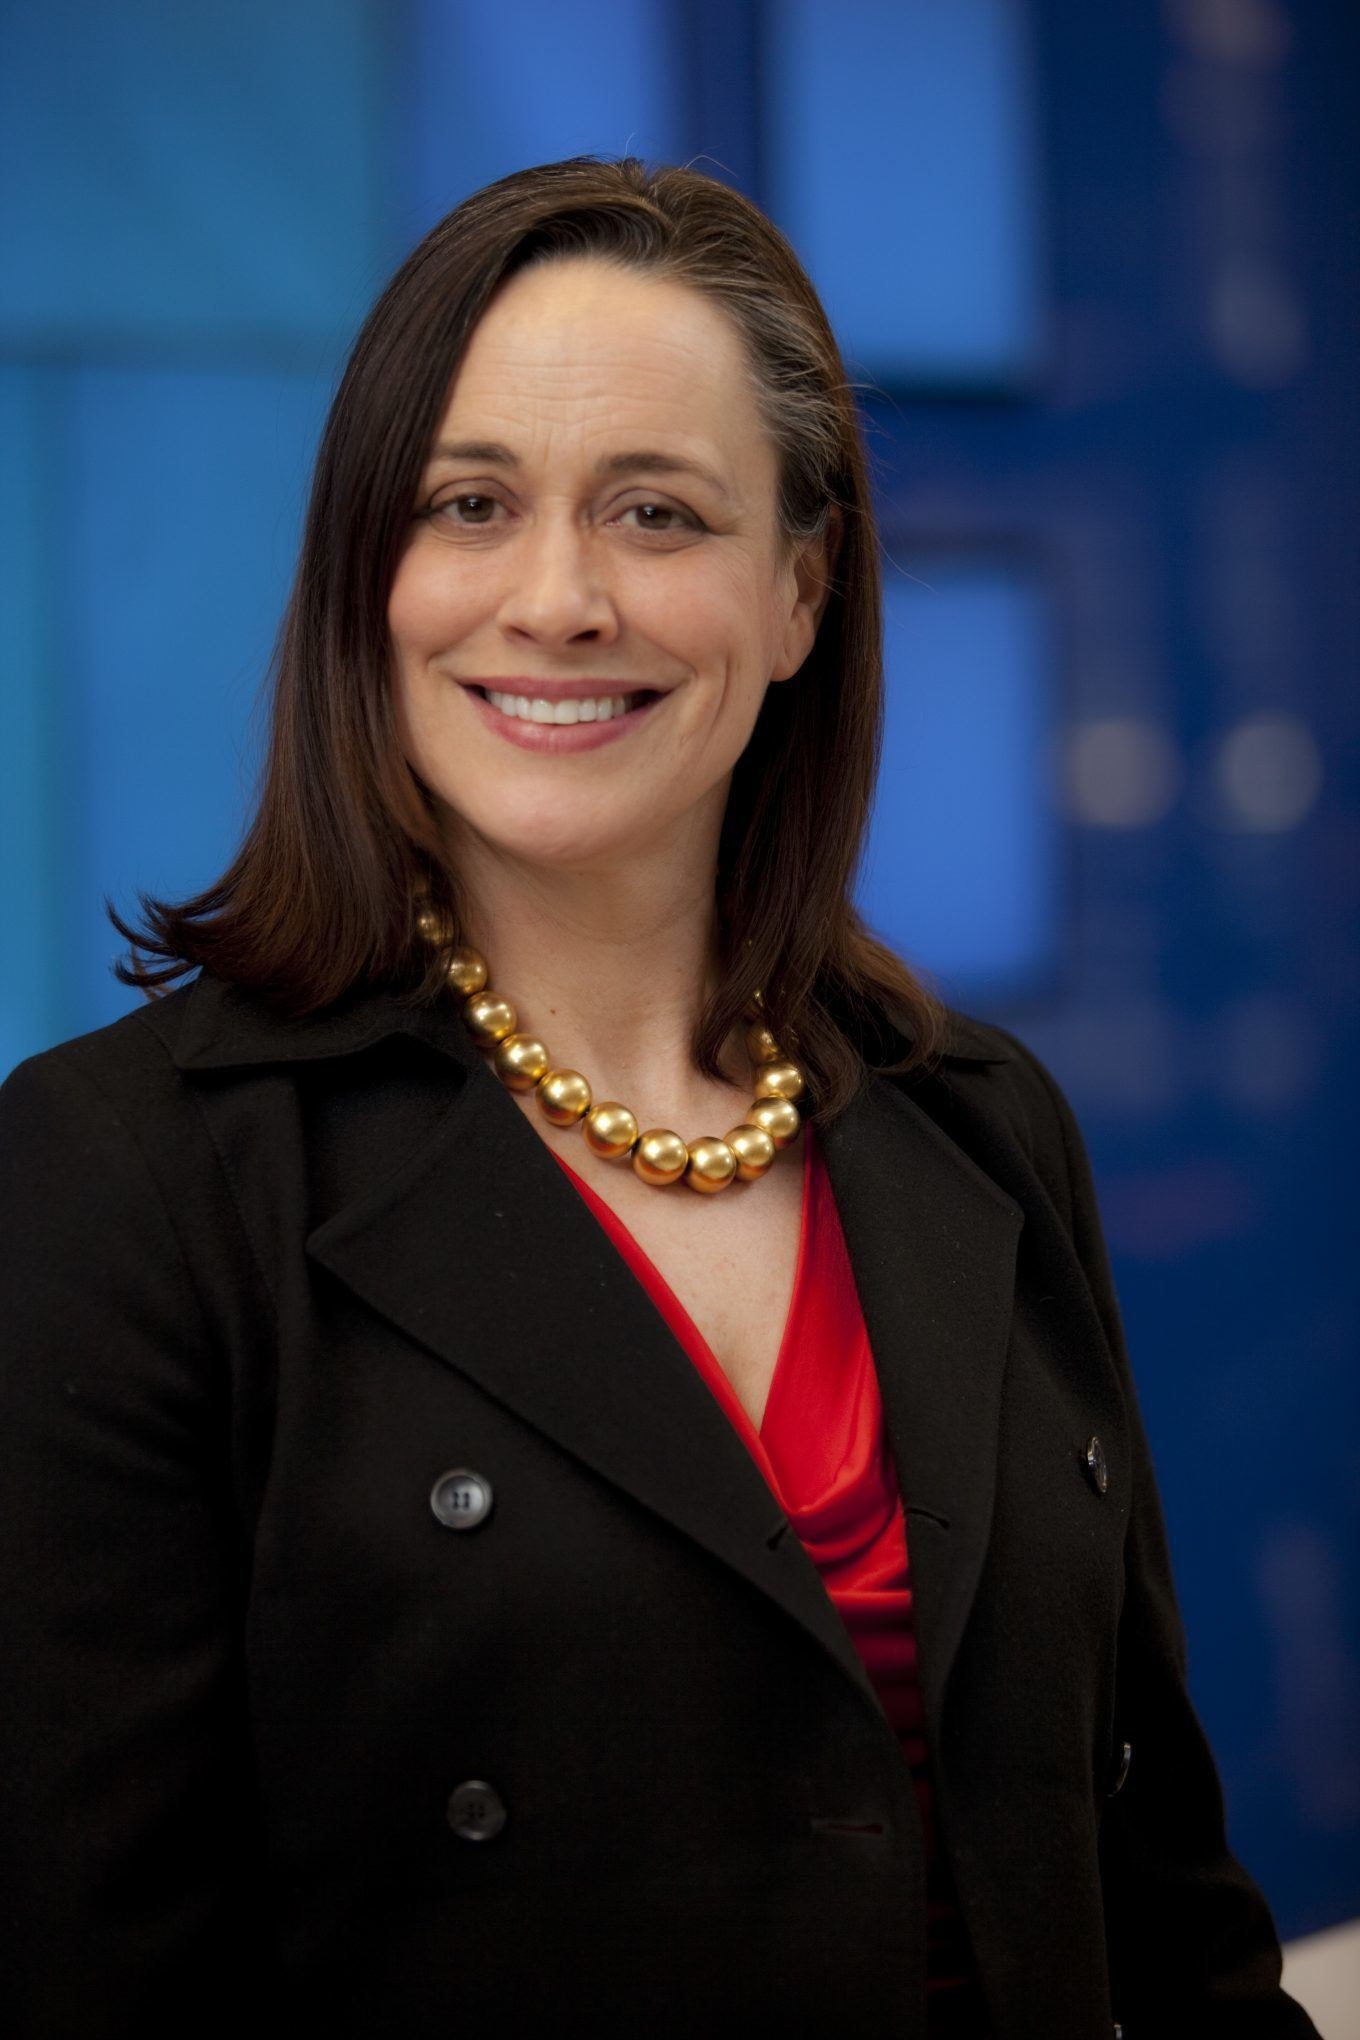 Anne Sonnen, formerly Chief Compliance Officer Wealth Management BMO Financial Group, now SVP and Chief Compliance Officer at Great-West Lifeco Inc.